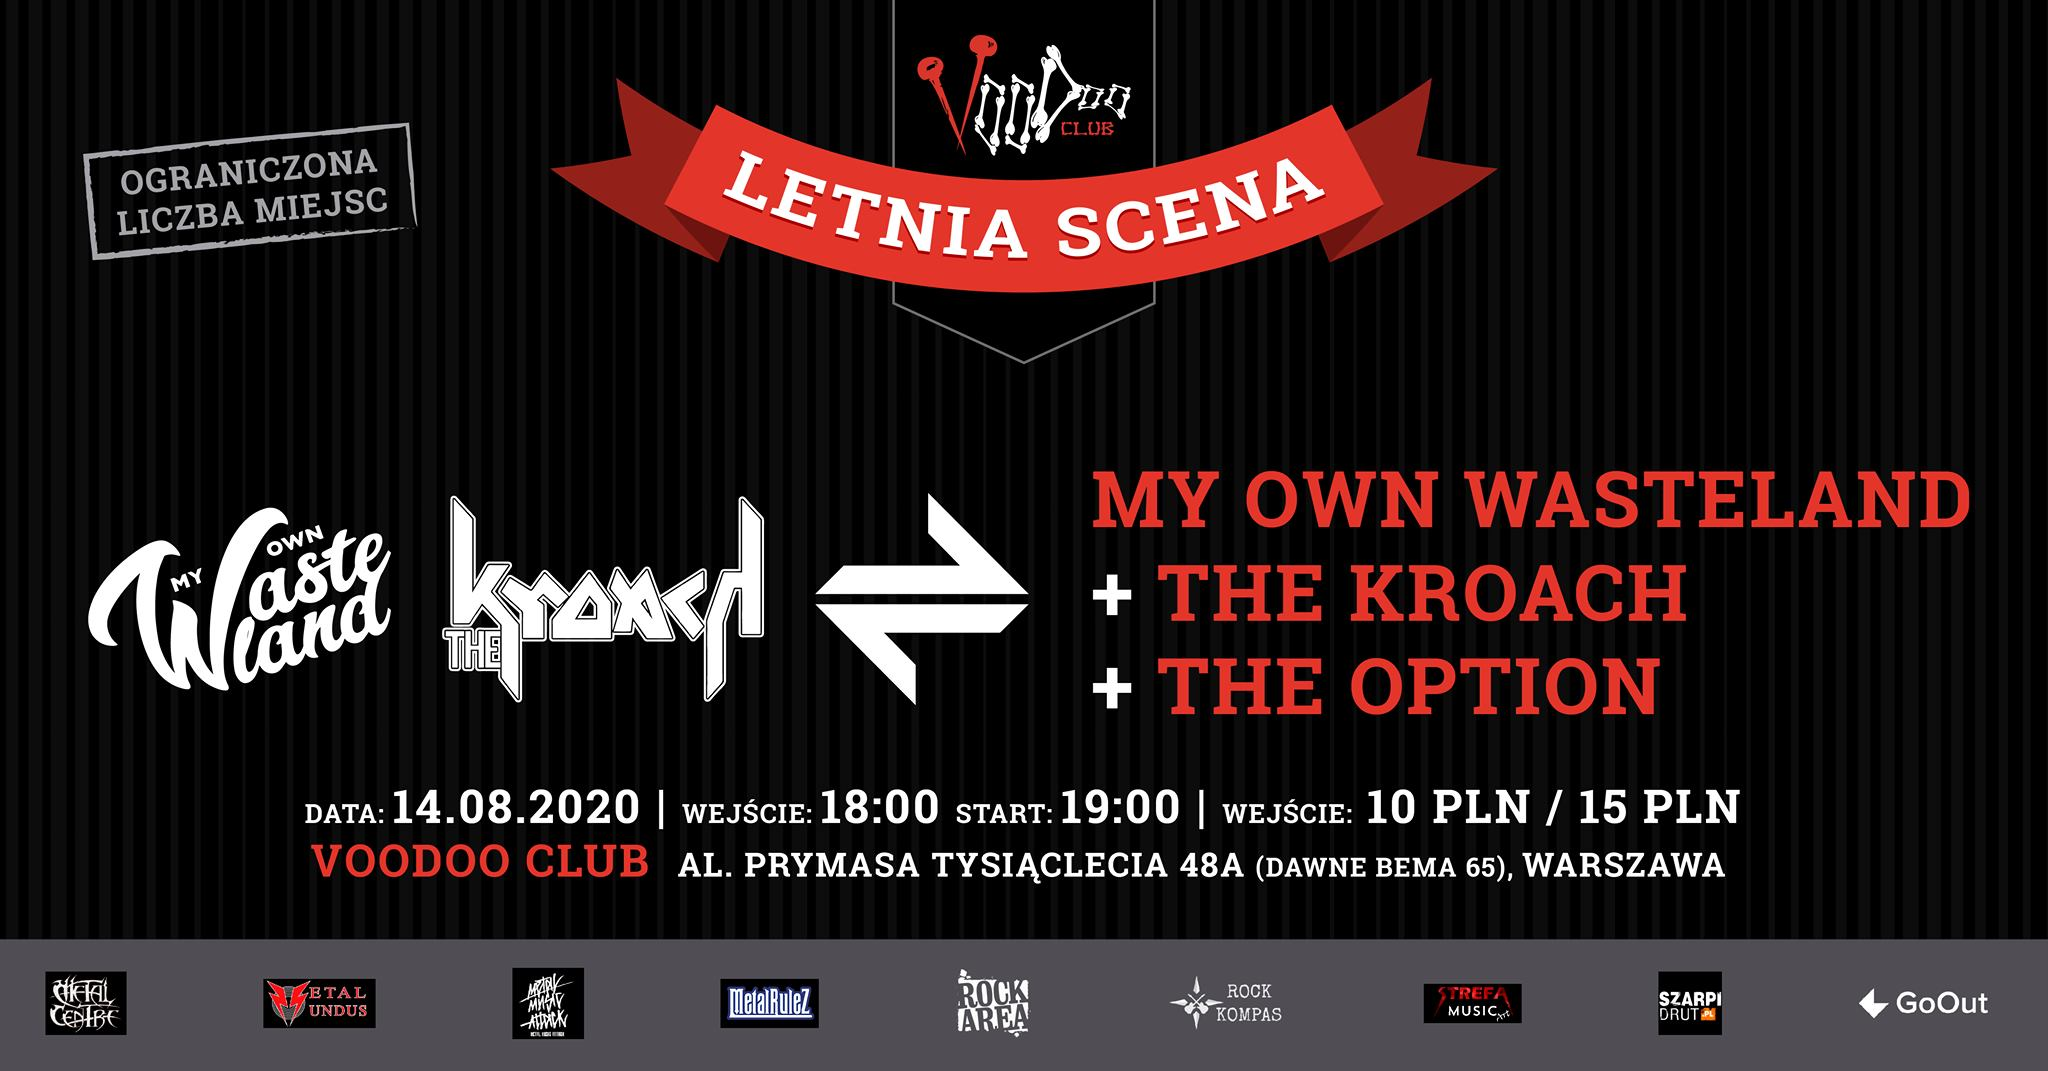 My Own Wasteland, The Kroach, The Option - Letnia Scena Voodoo